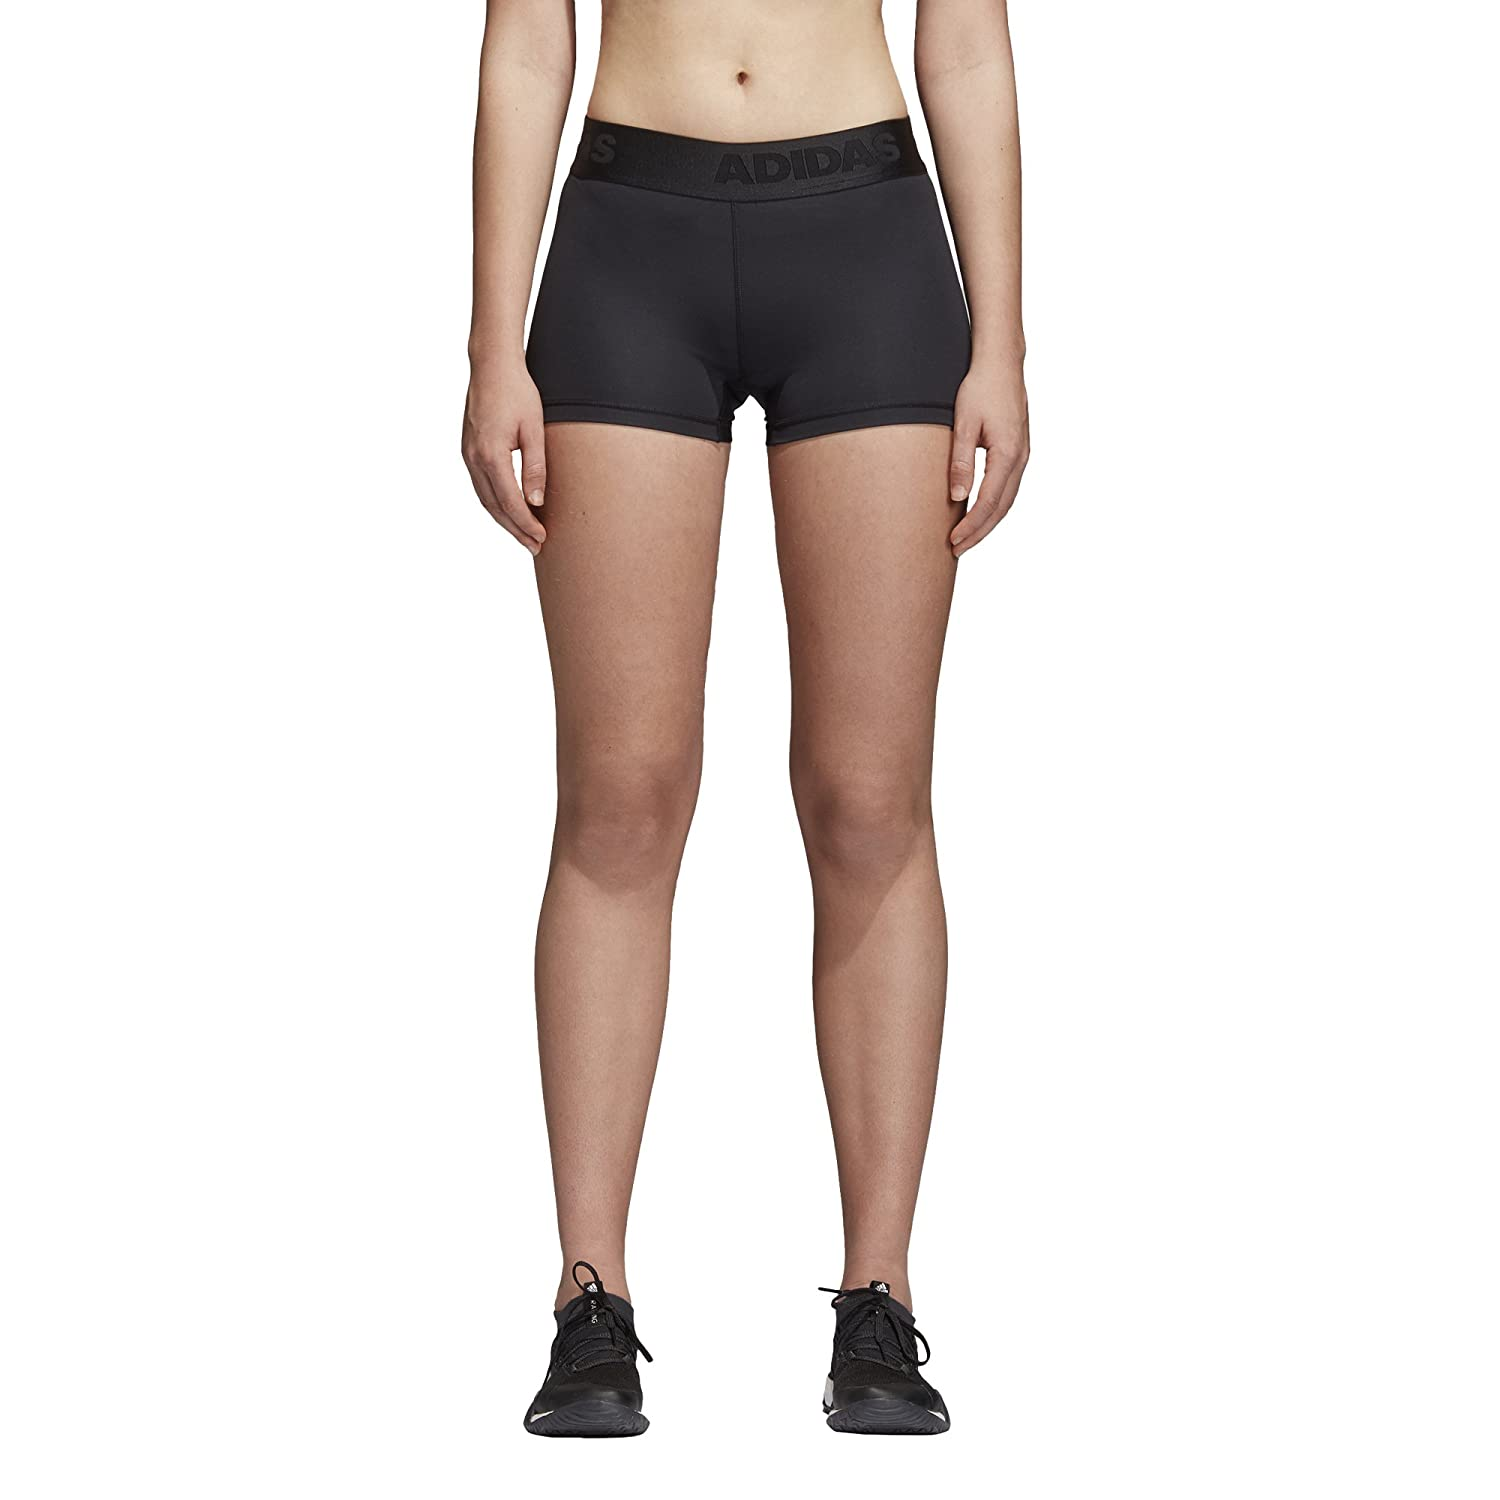 adidas Women's Alphaskin Sport Short Tights S1853WDNA680-P